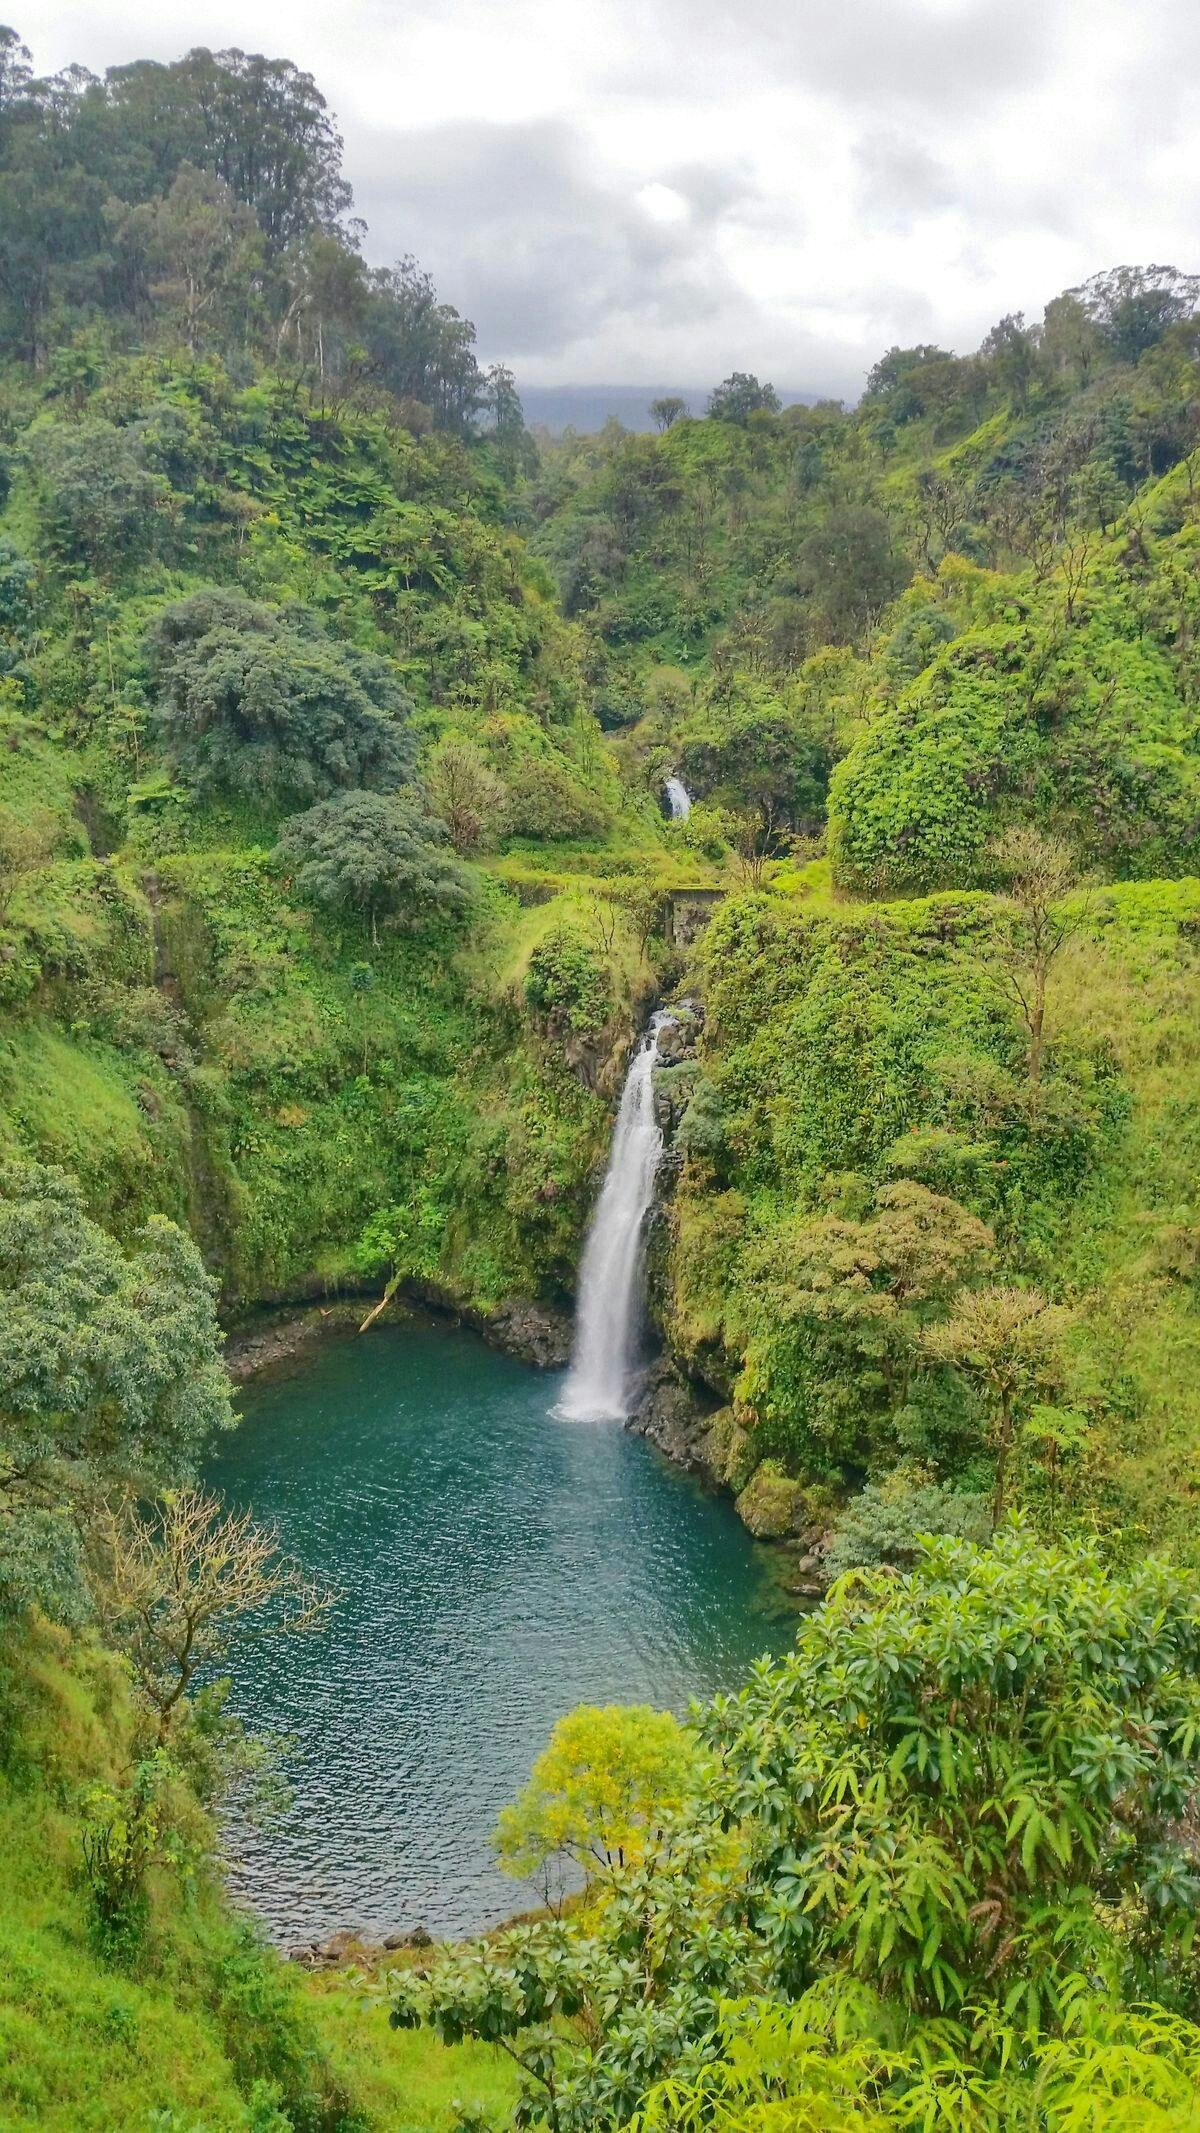 50+ things to do in Maui (mostly FREE!) for first trip to Hawaii 🌴 Maui travel blog